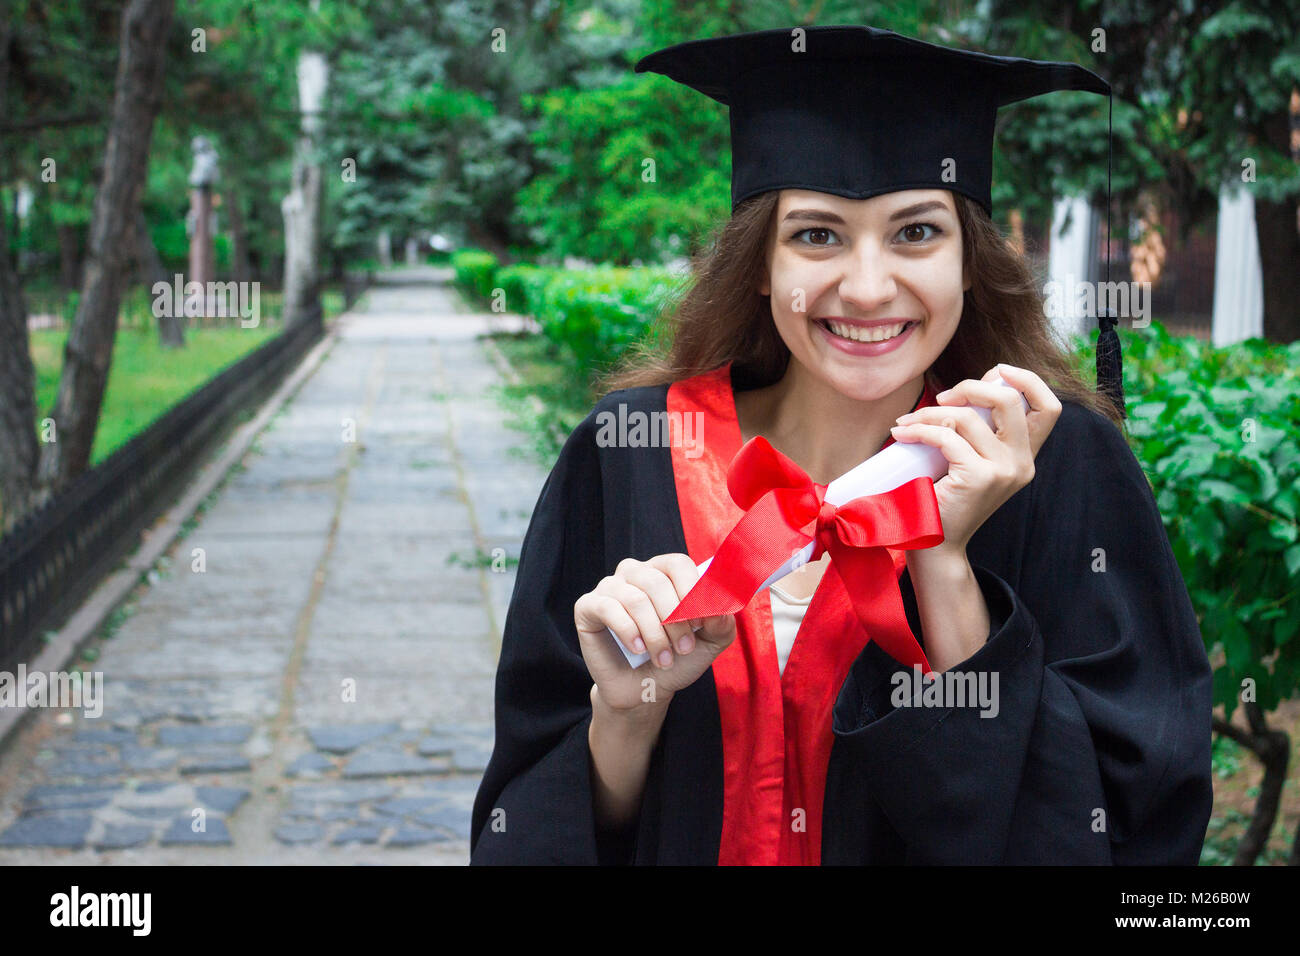 Woman portrait on her graduation day. University. Education, graduation and people concept. - Stock Image